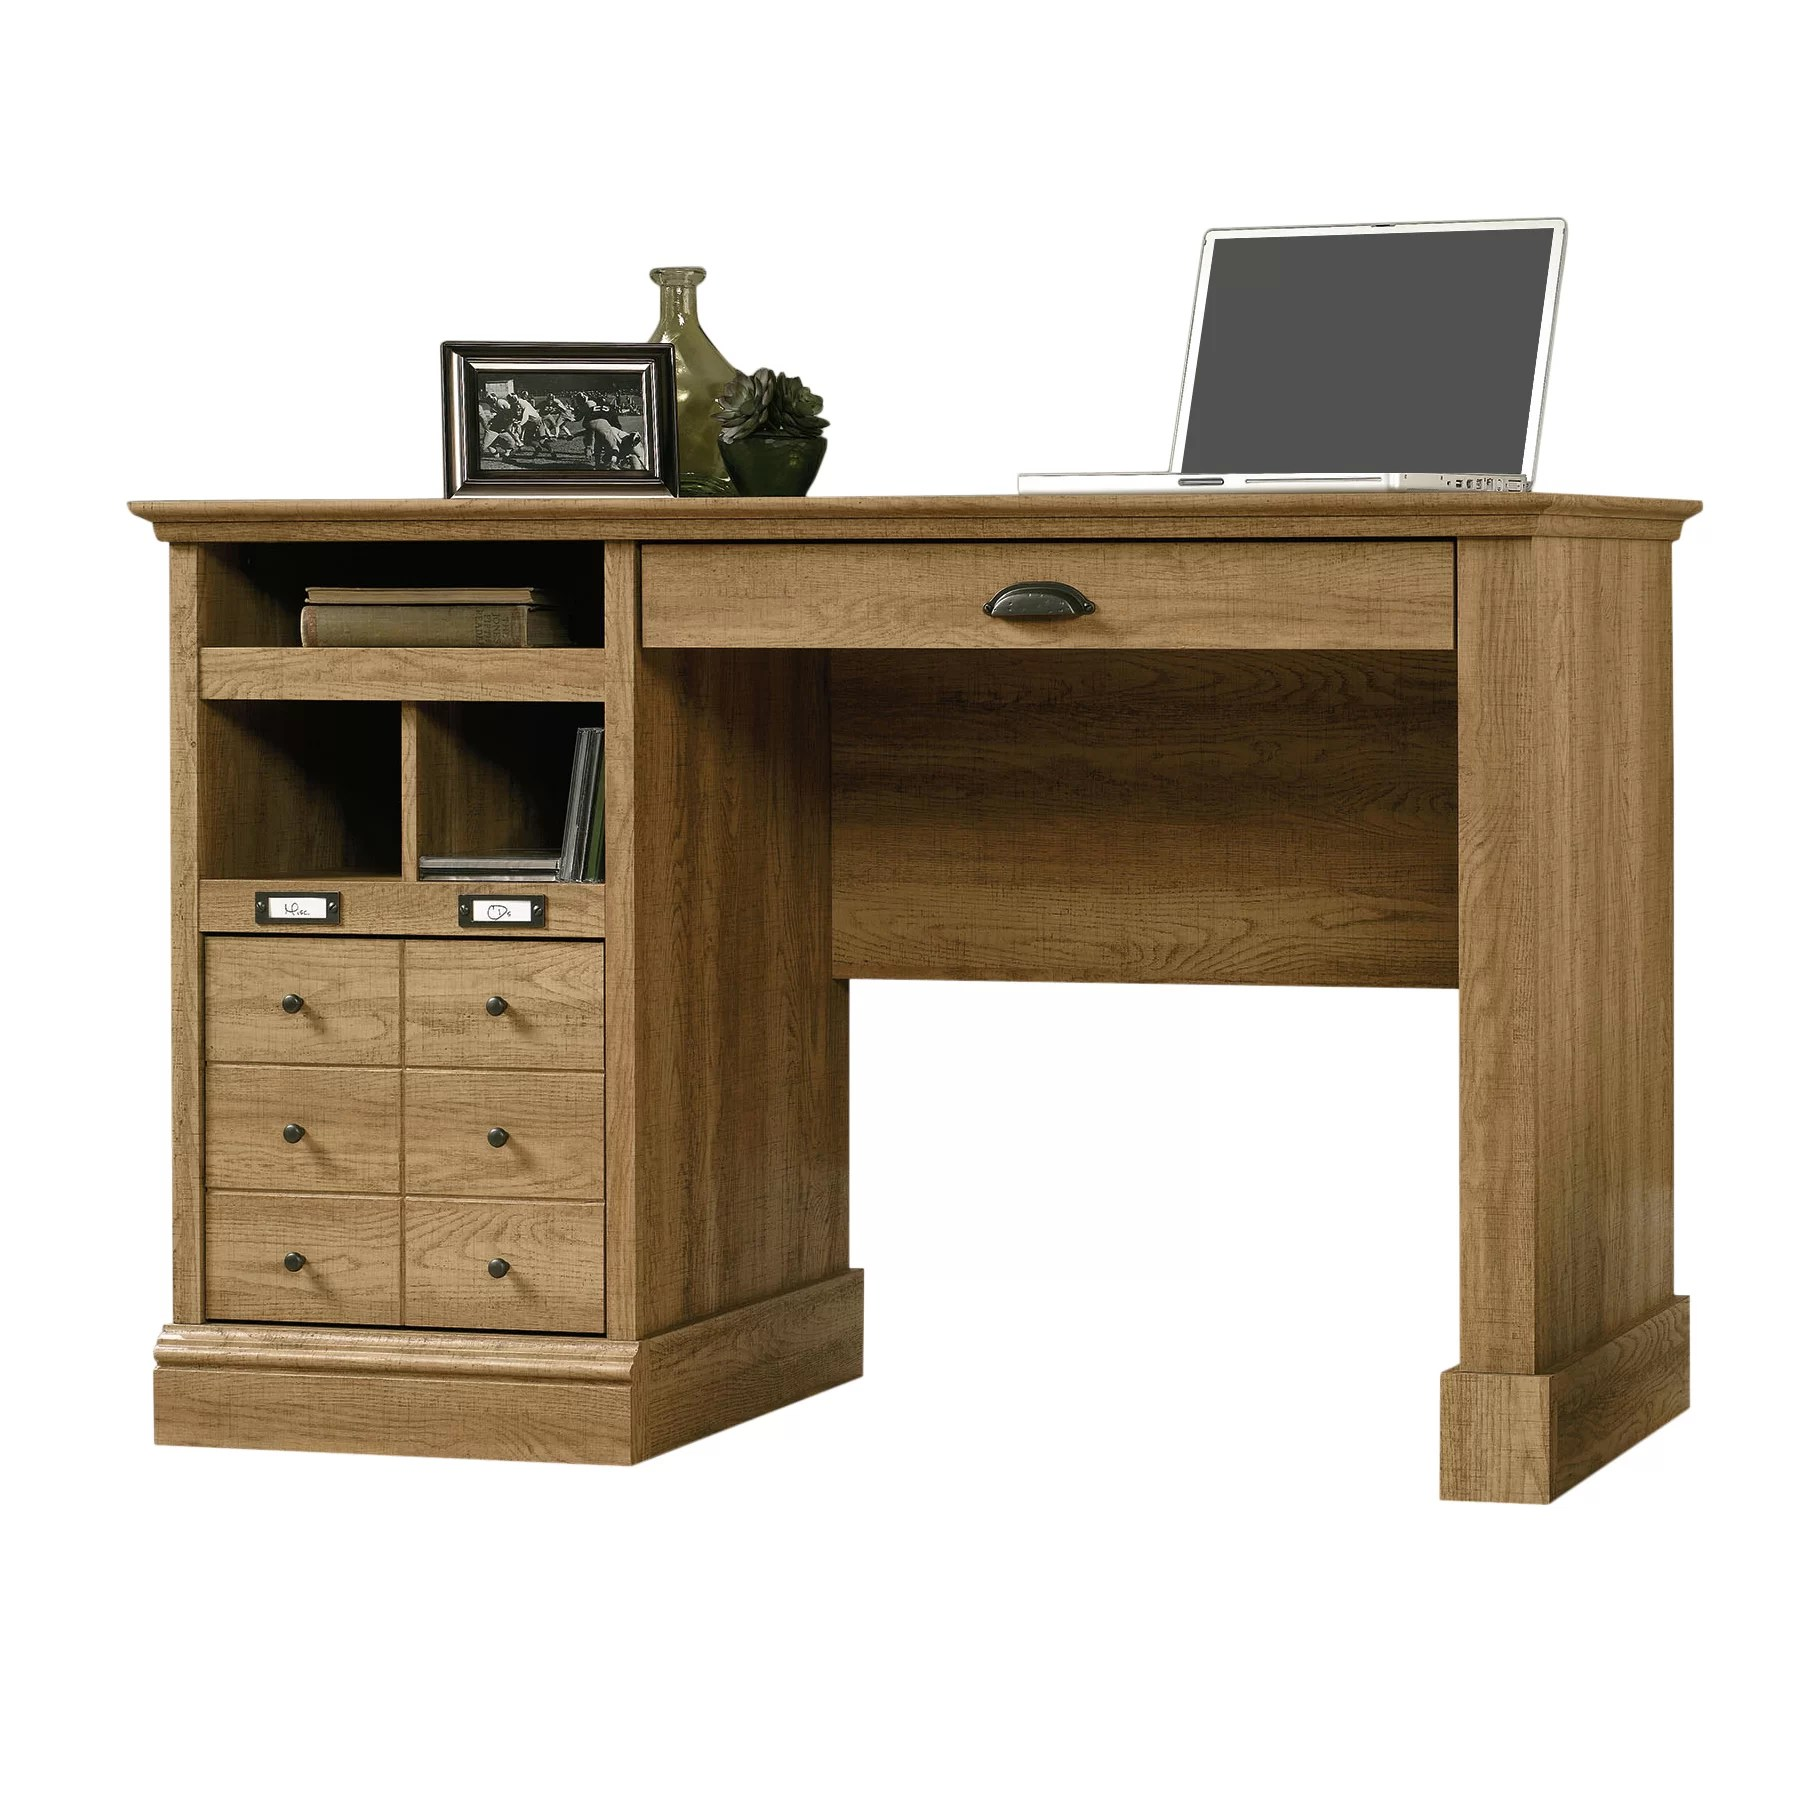 Computer Desk With Drawers Beachcrest Home Bowerbank Computer Desk With 2 Storage